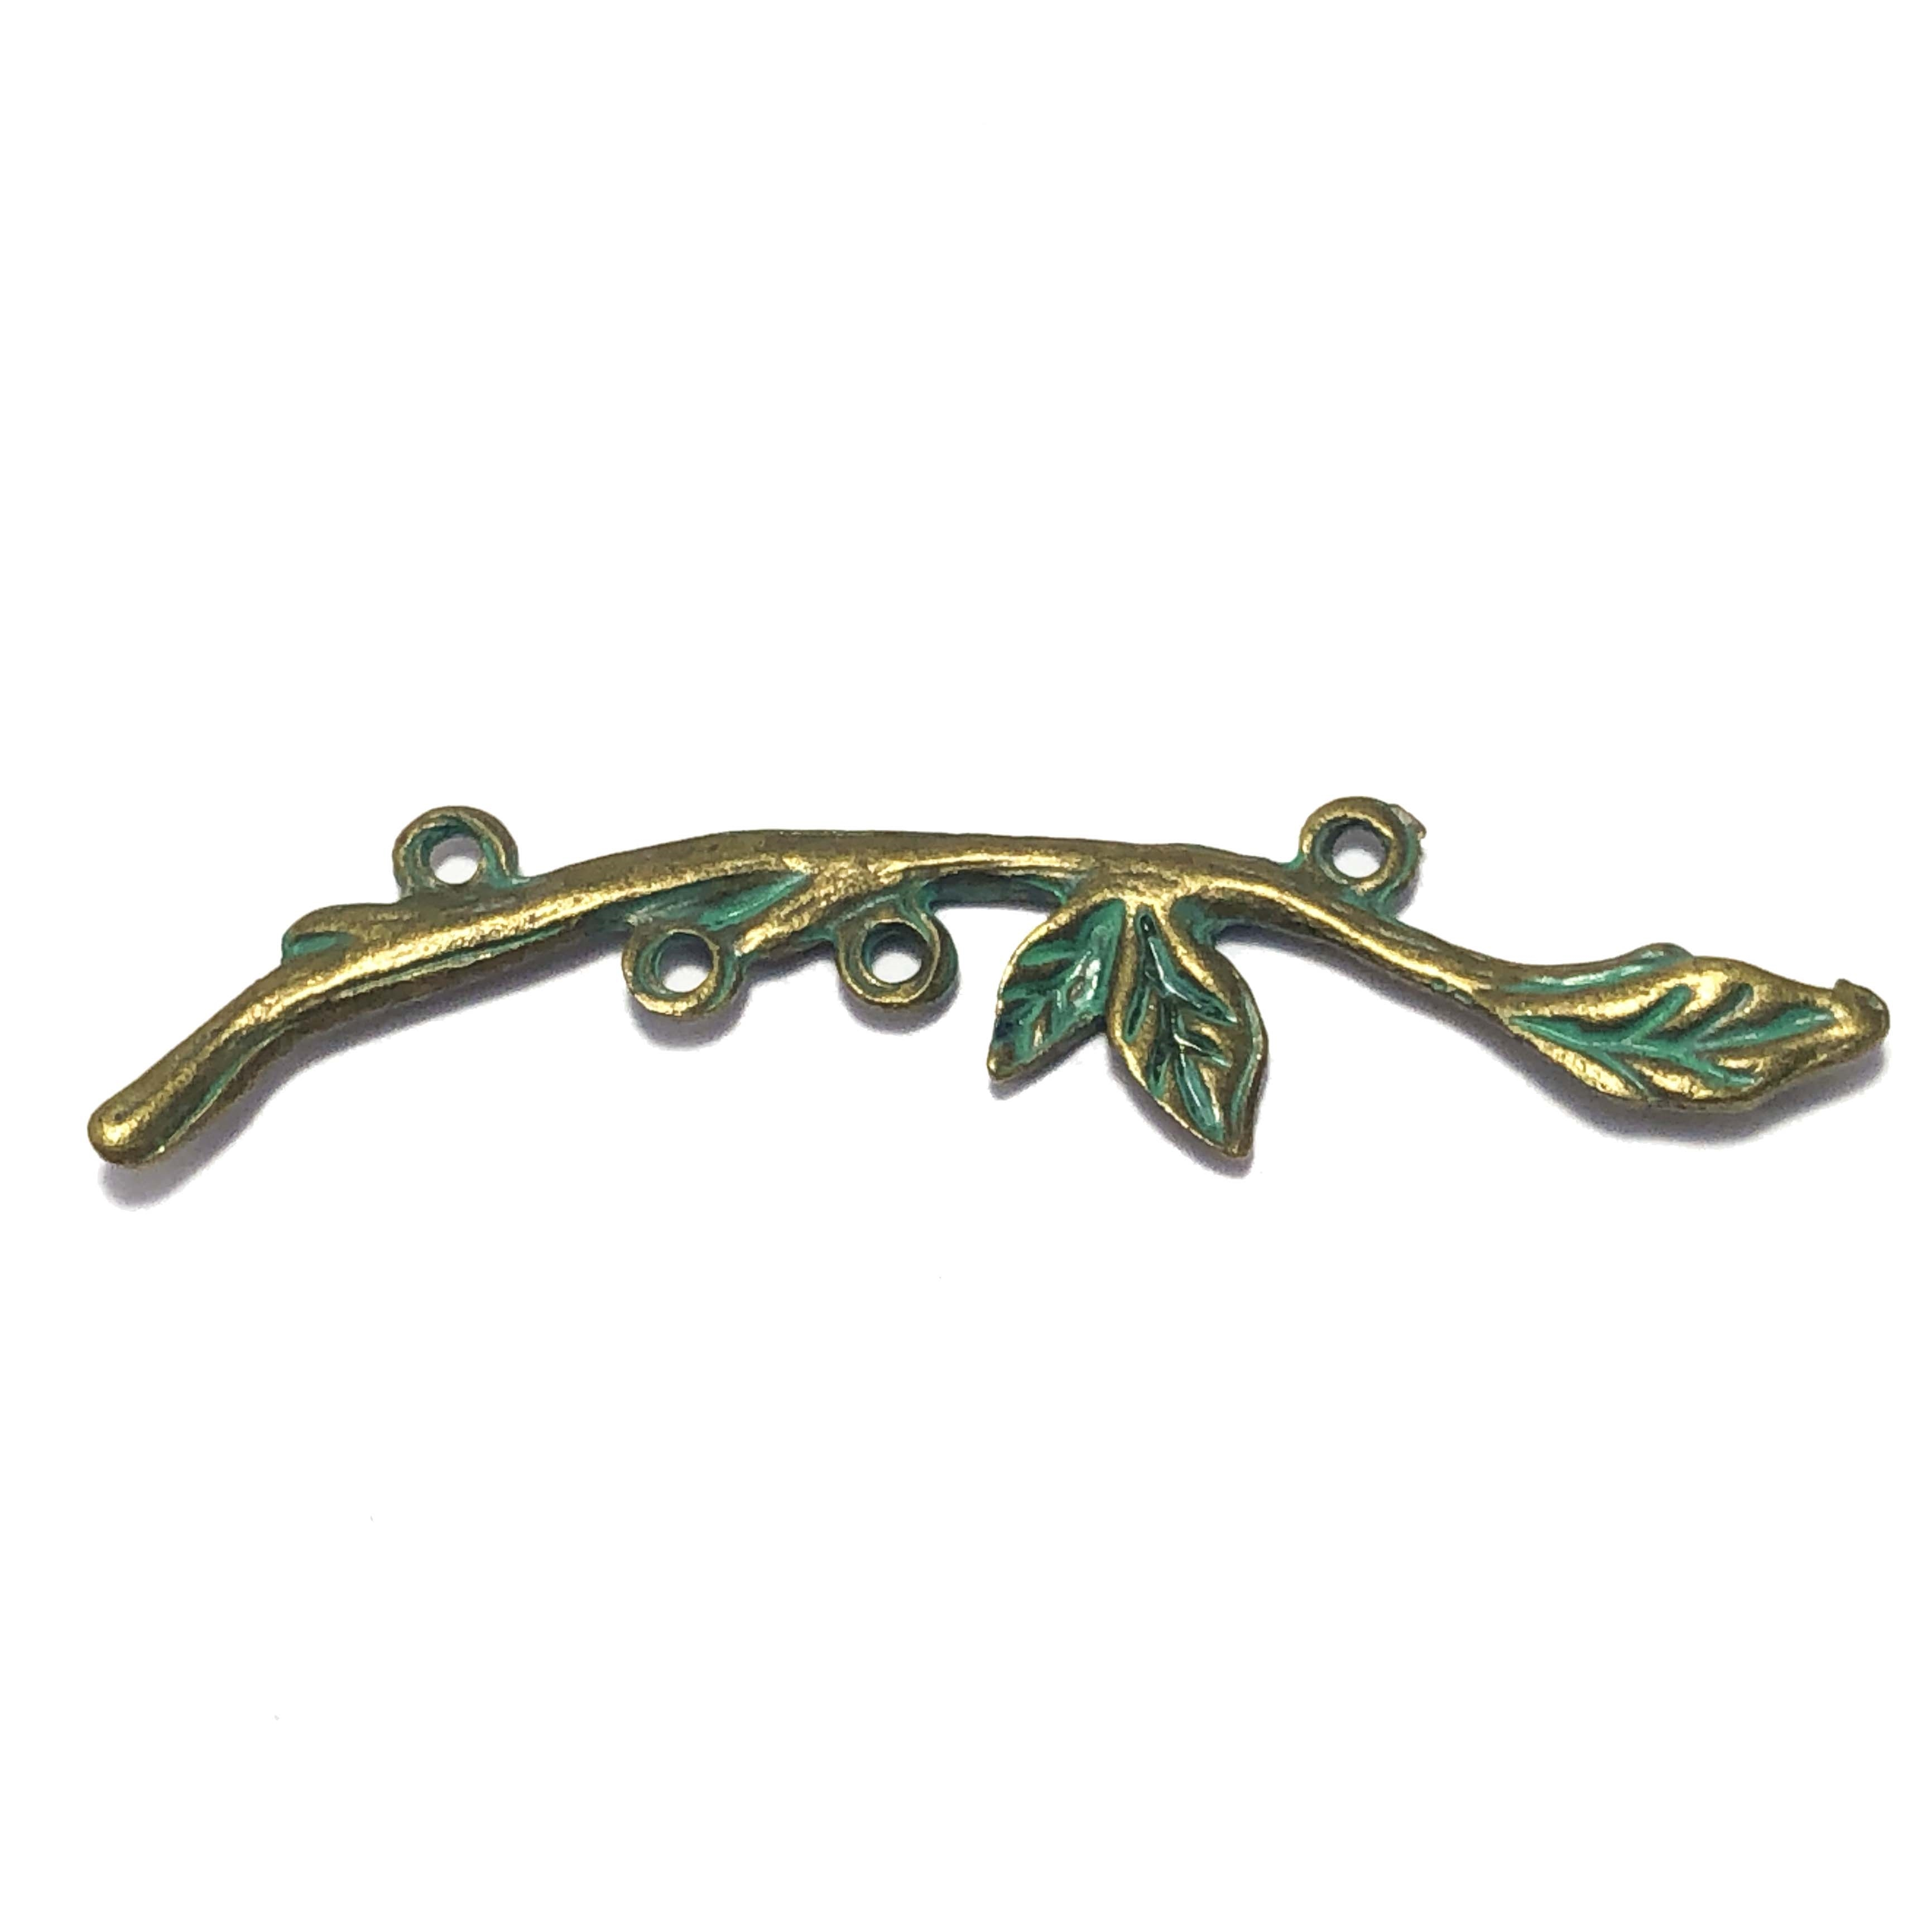 tree branch, altered art, branch, antique bronze, green patina, toggle, brass stamping, brass, twig, B'sue Boutiques, nickel free, B'sue Boutiques,  vintage supplies, jewelry making, jewelry supplies, jewelry findings, 09577